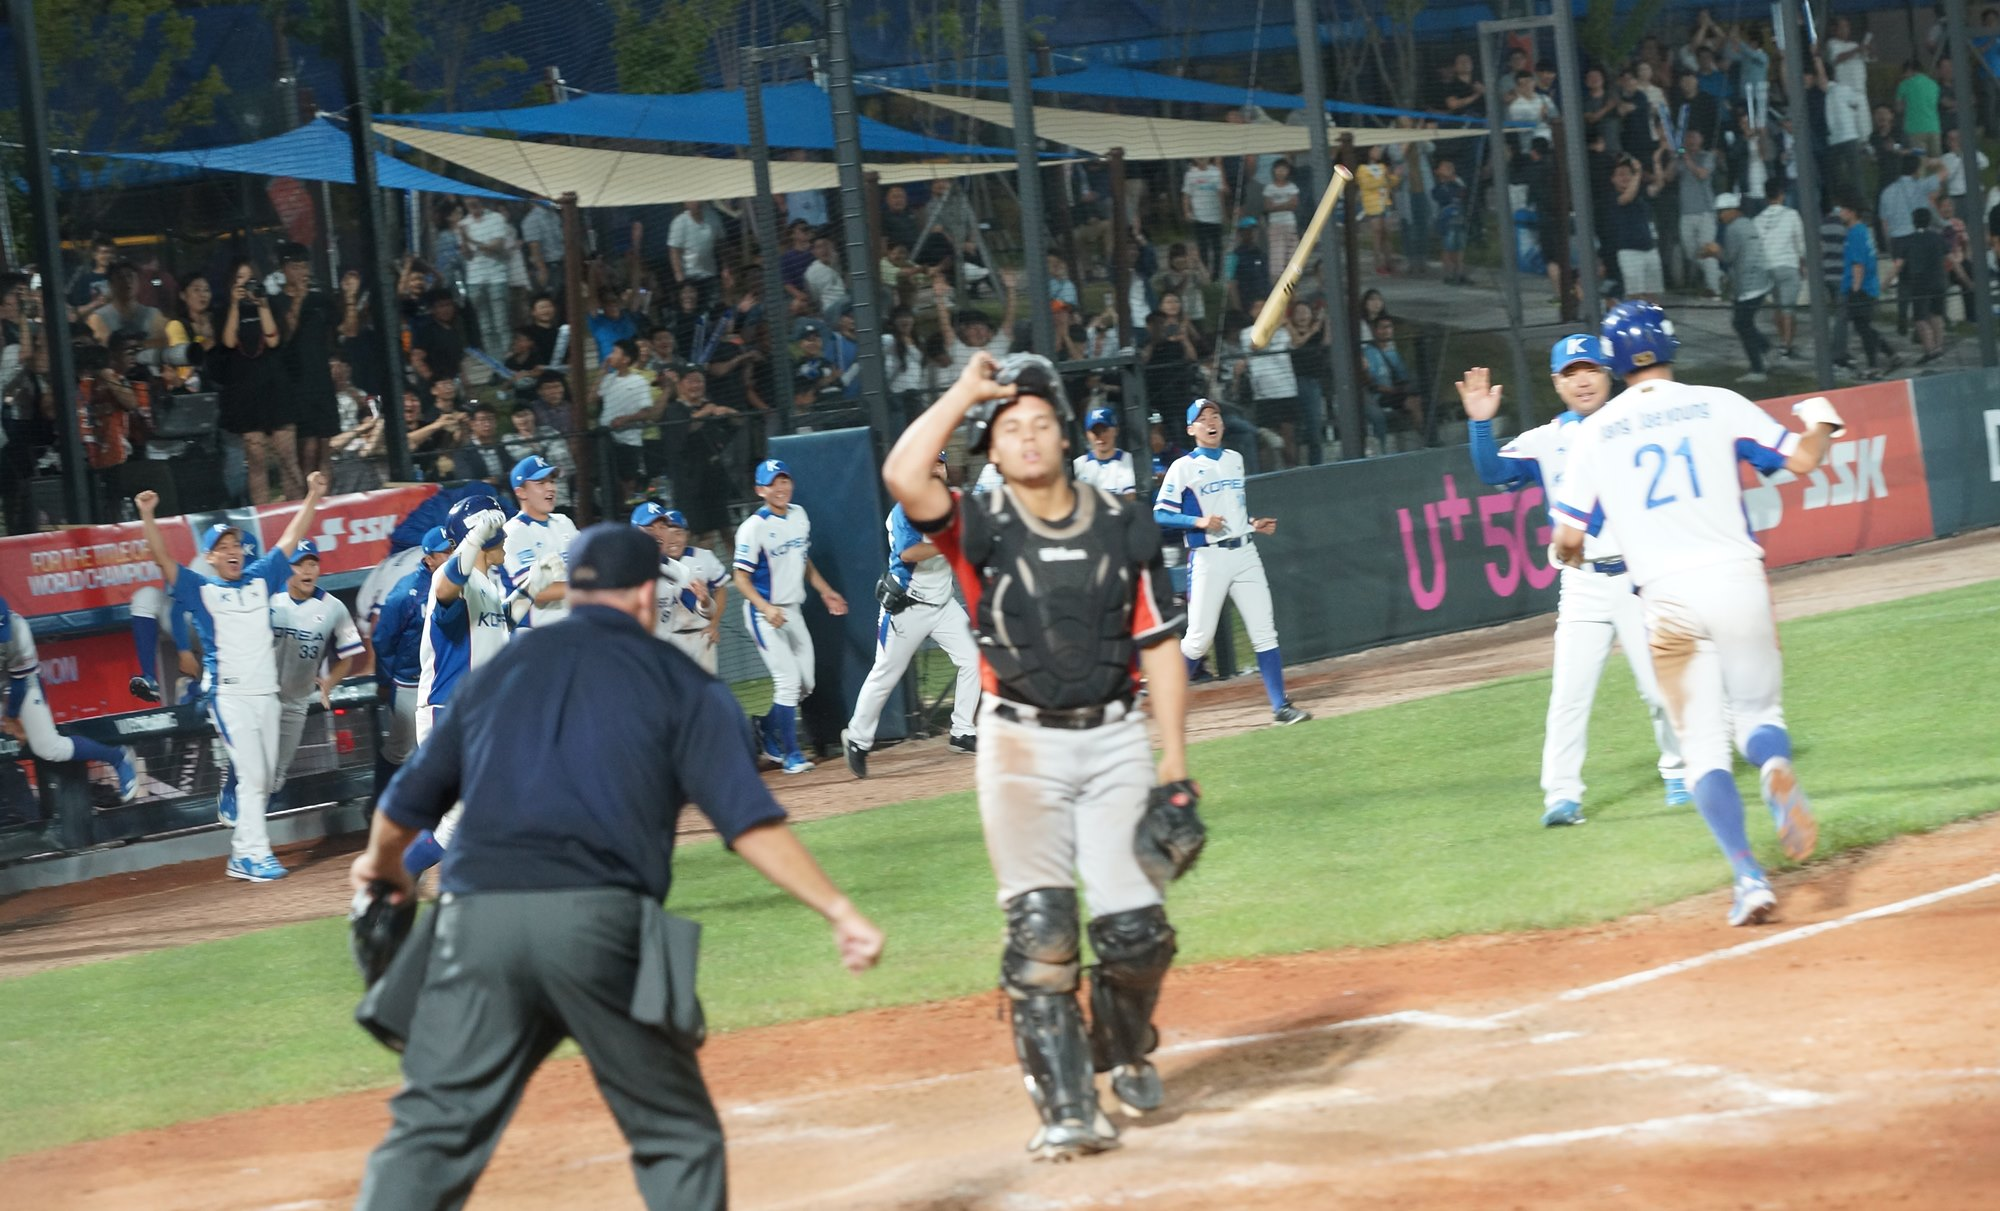 Korea had to wait until the tenth inning to win